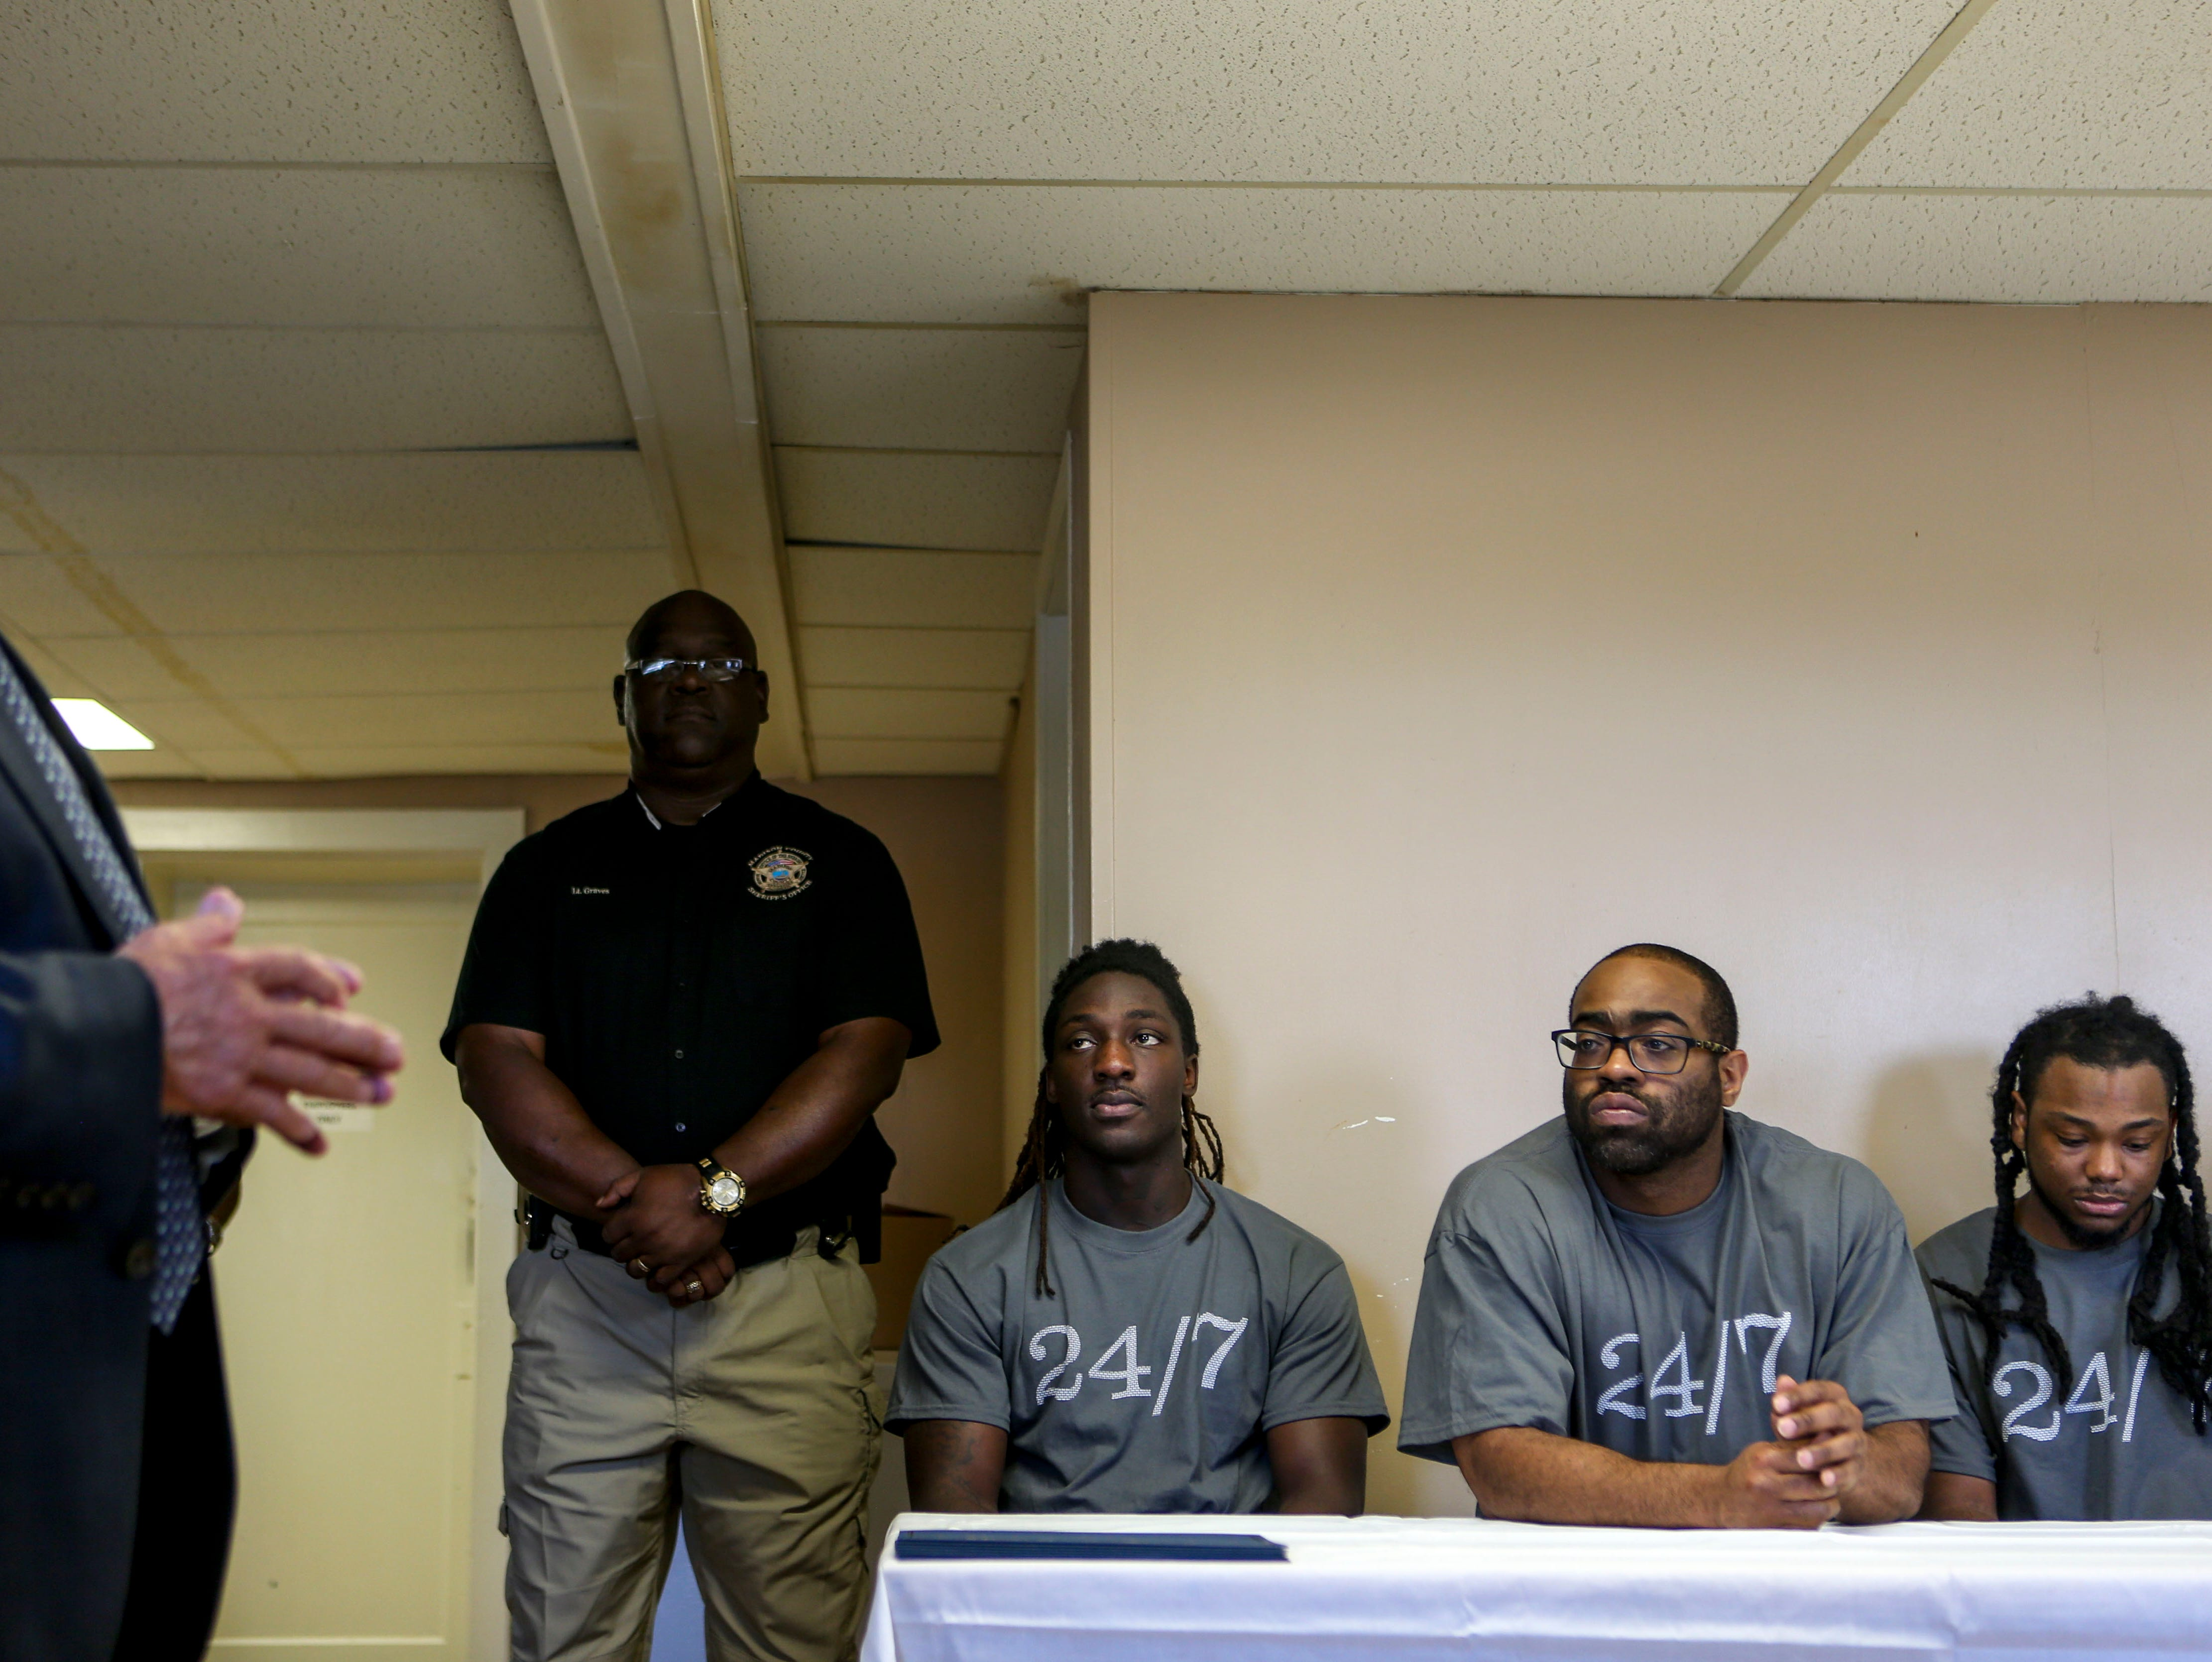 Jarnakin Brown, left, Carey Demoss, center, and Jarrett Wilson, right, listen to program directors speak in support of their completing the InsideOut Dad program at Madison County Penal Farm in Jackson, Tenn., on Thursday, Oct. 4, 2018.